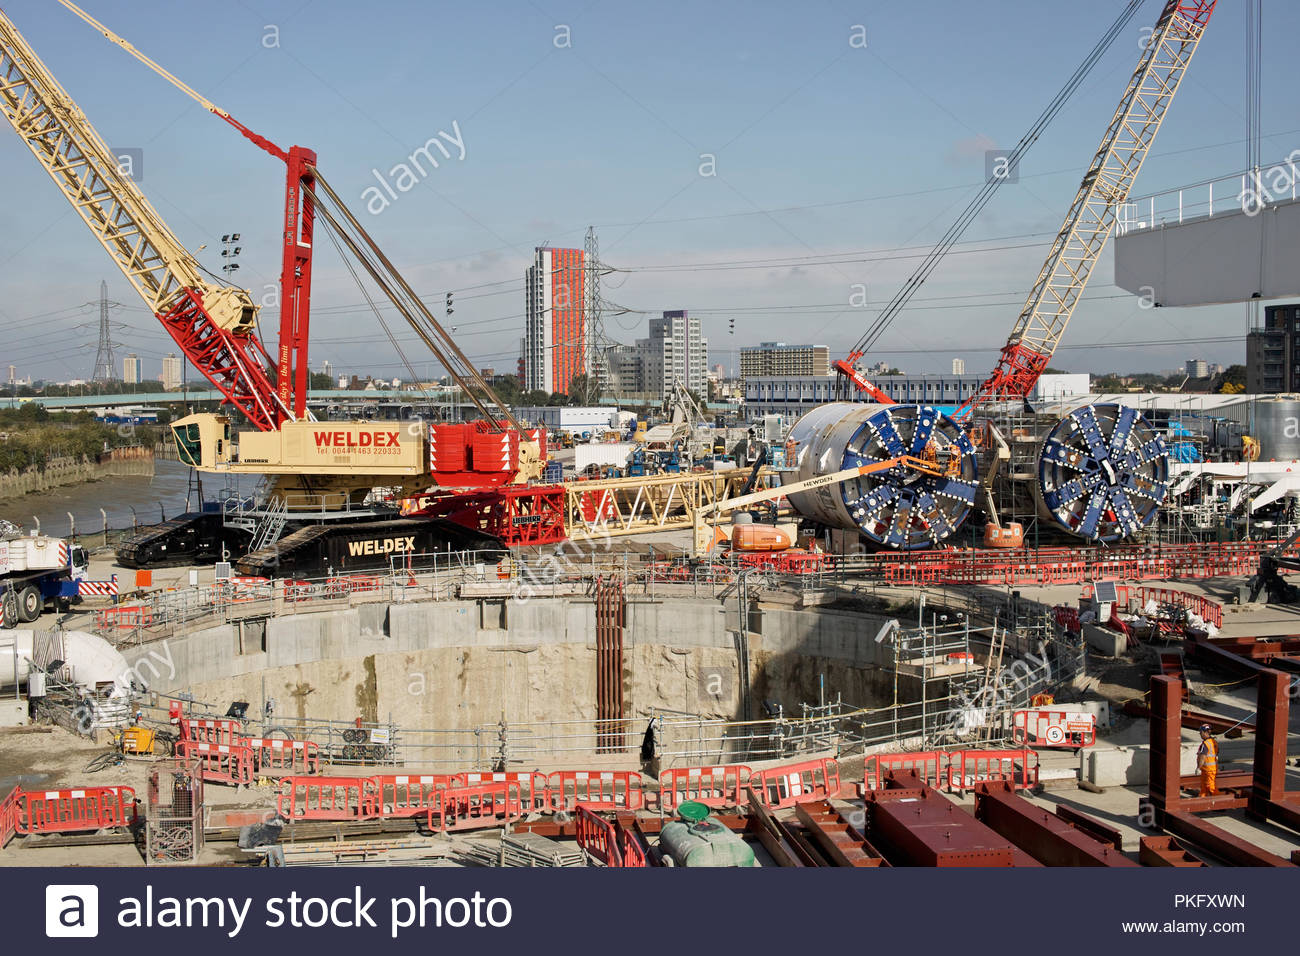 Workers prepare the tunnel boring machines (TBM) at the Limmo Peninsular site: Canning Town, London. - Stock Image